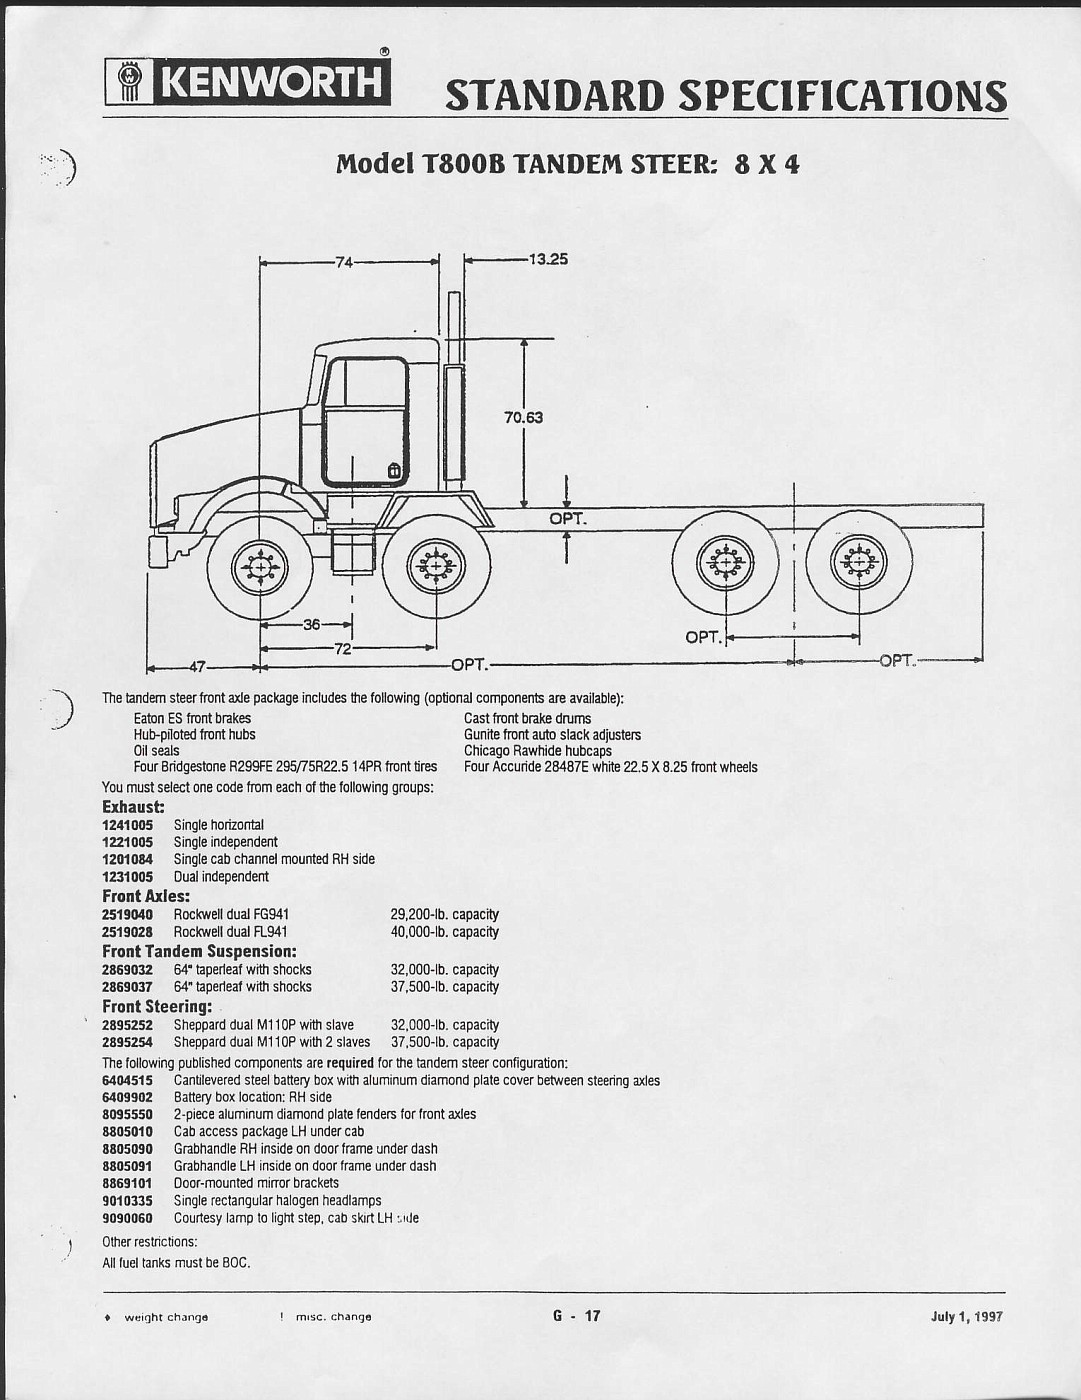 Photo kwspec1997 06 kenworth spec sheets 1997 album for New home spec sheet